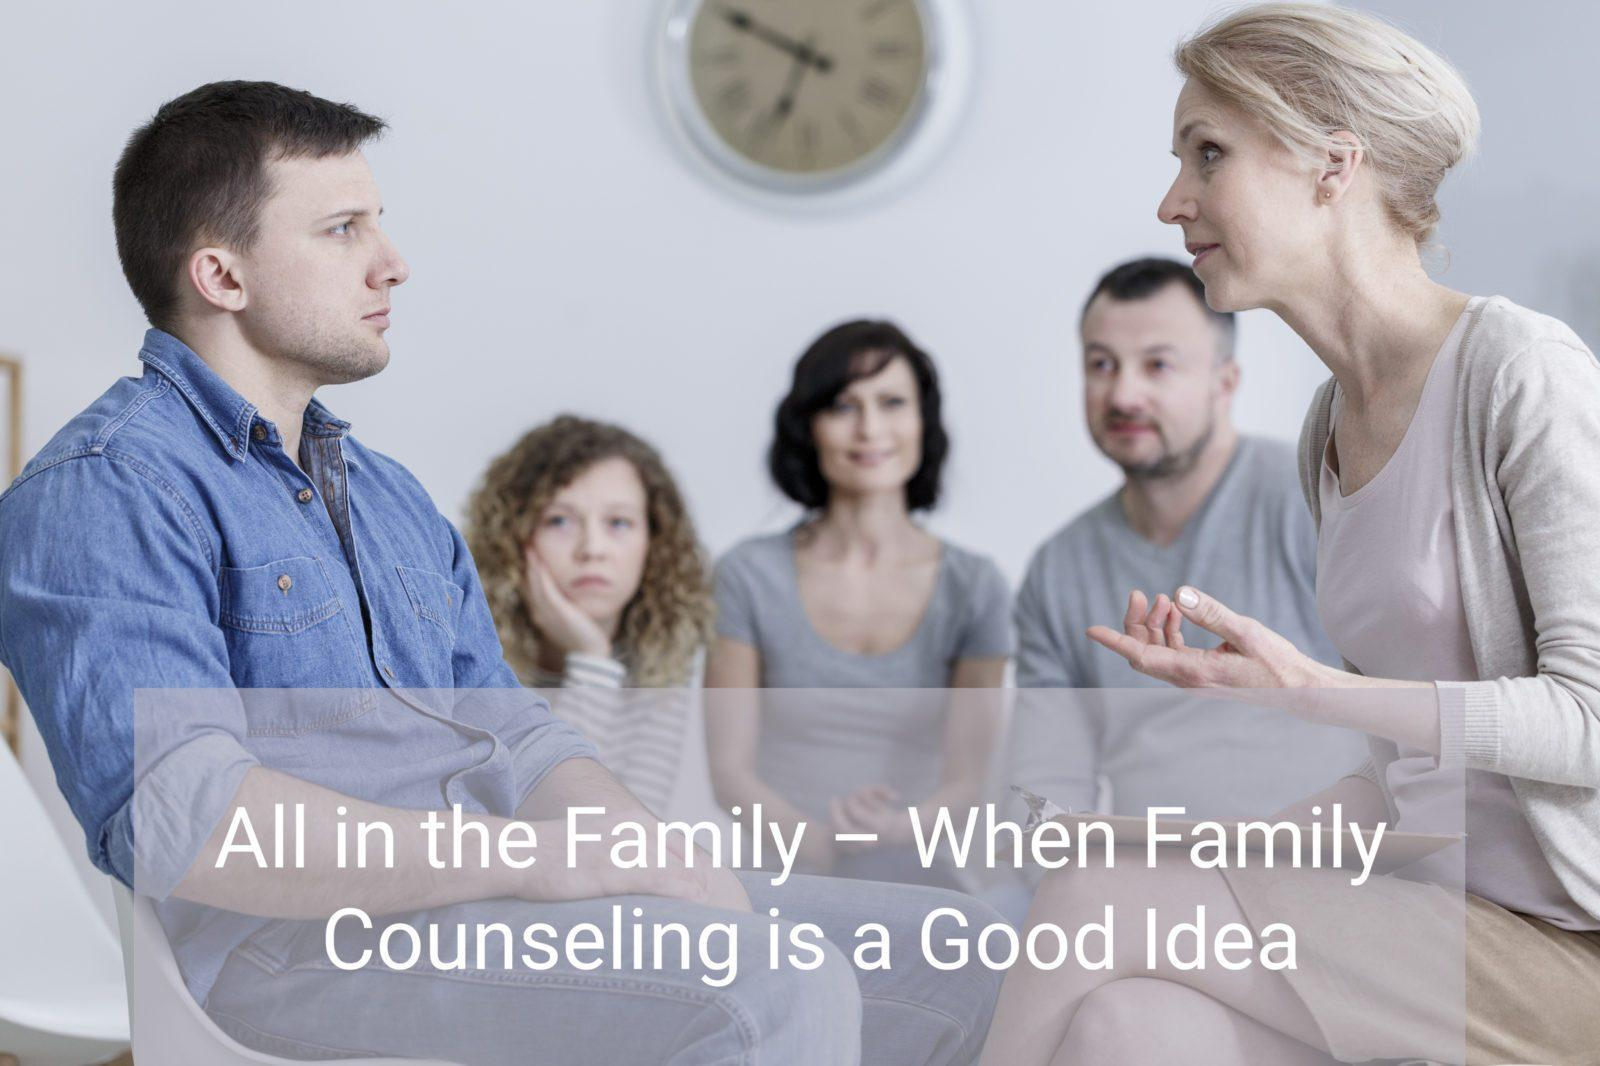 when is family counseling a good idea?